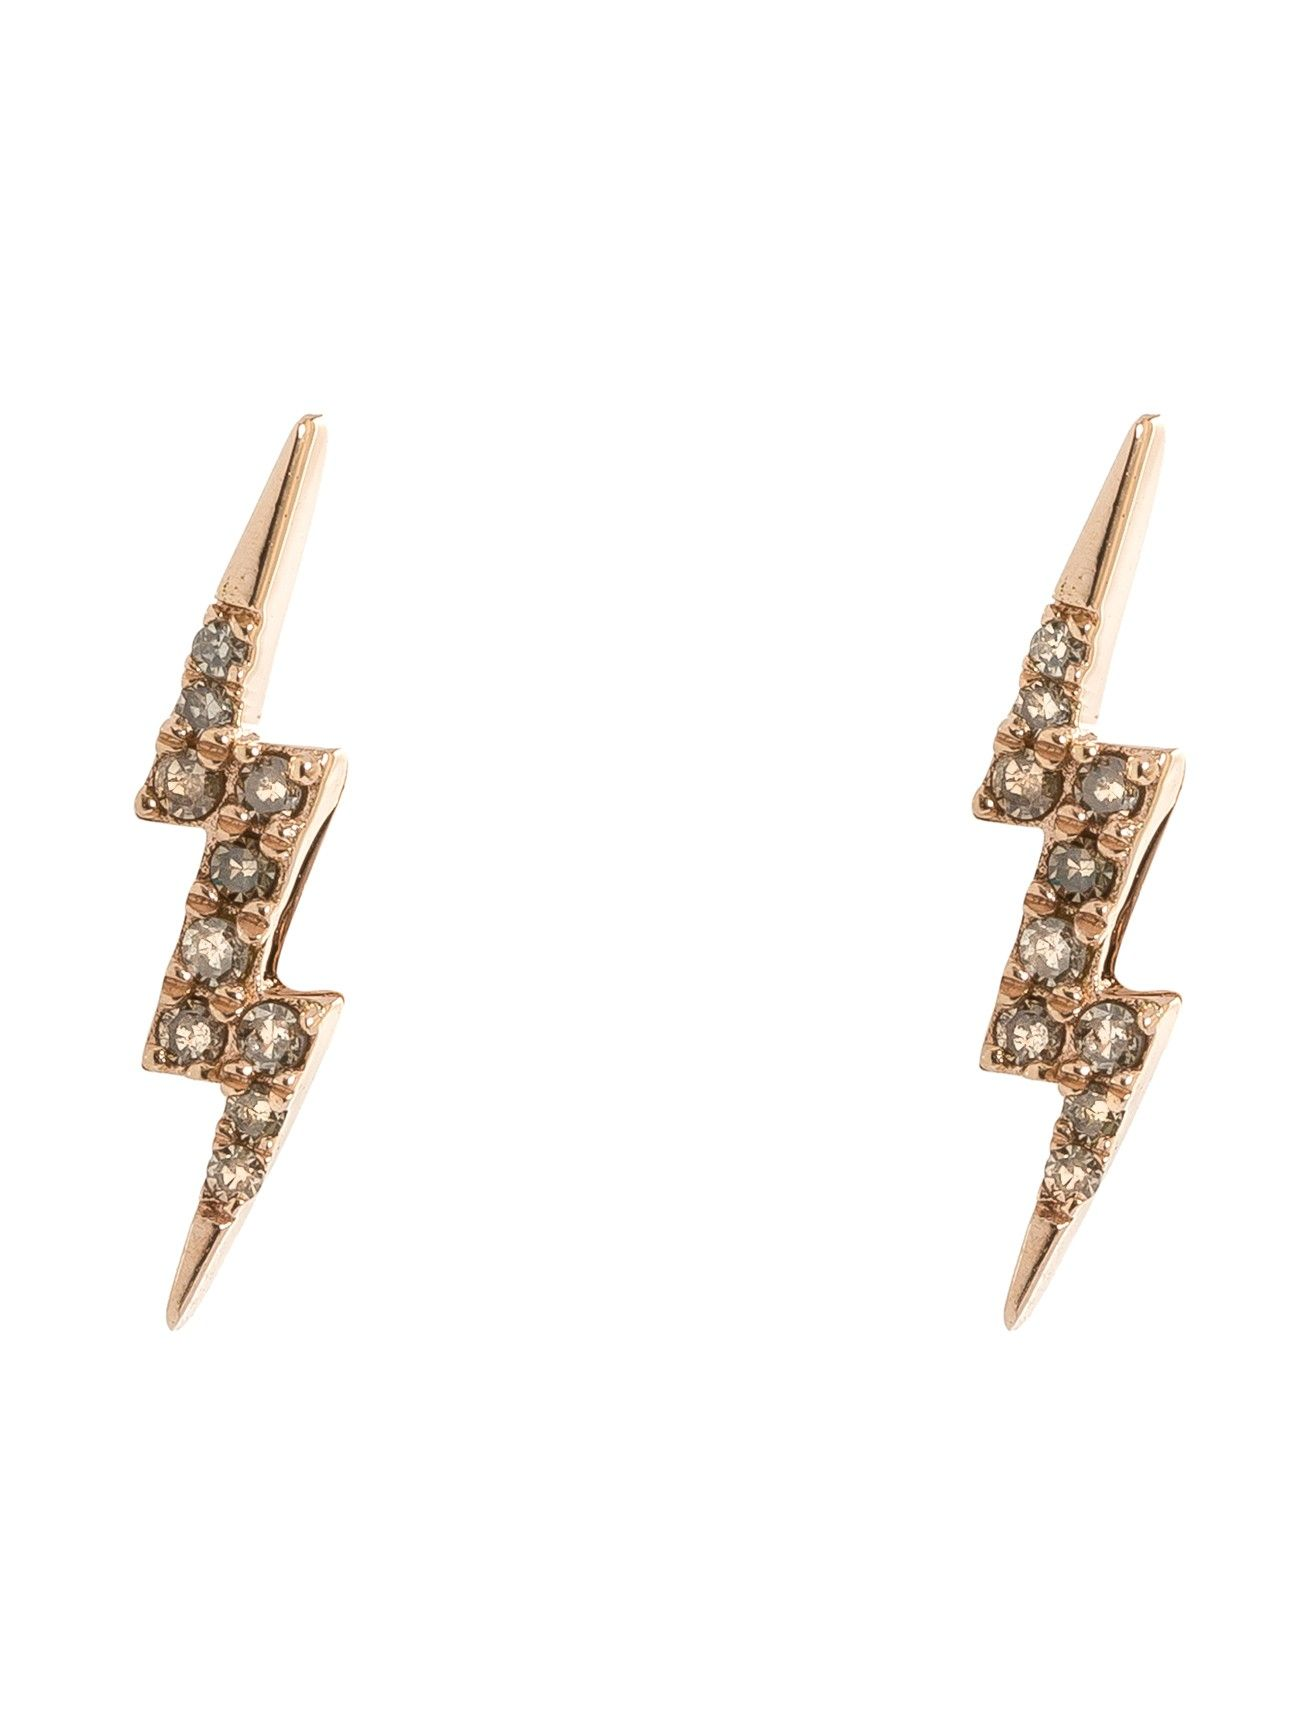 Lulu Designs 14k Bolt Stud Earrings These Fiery Studs By Feature A Playful Lightning Design And Sparkling White Diamonds For An Extra